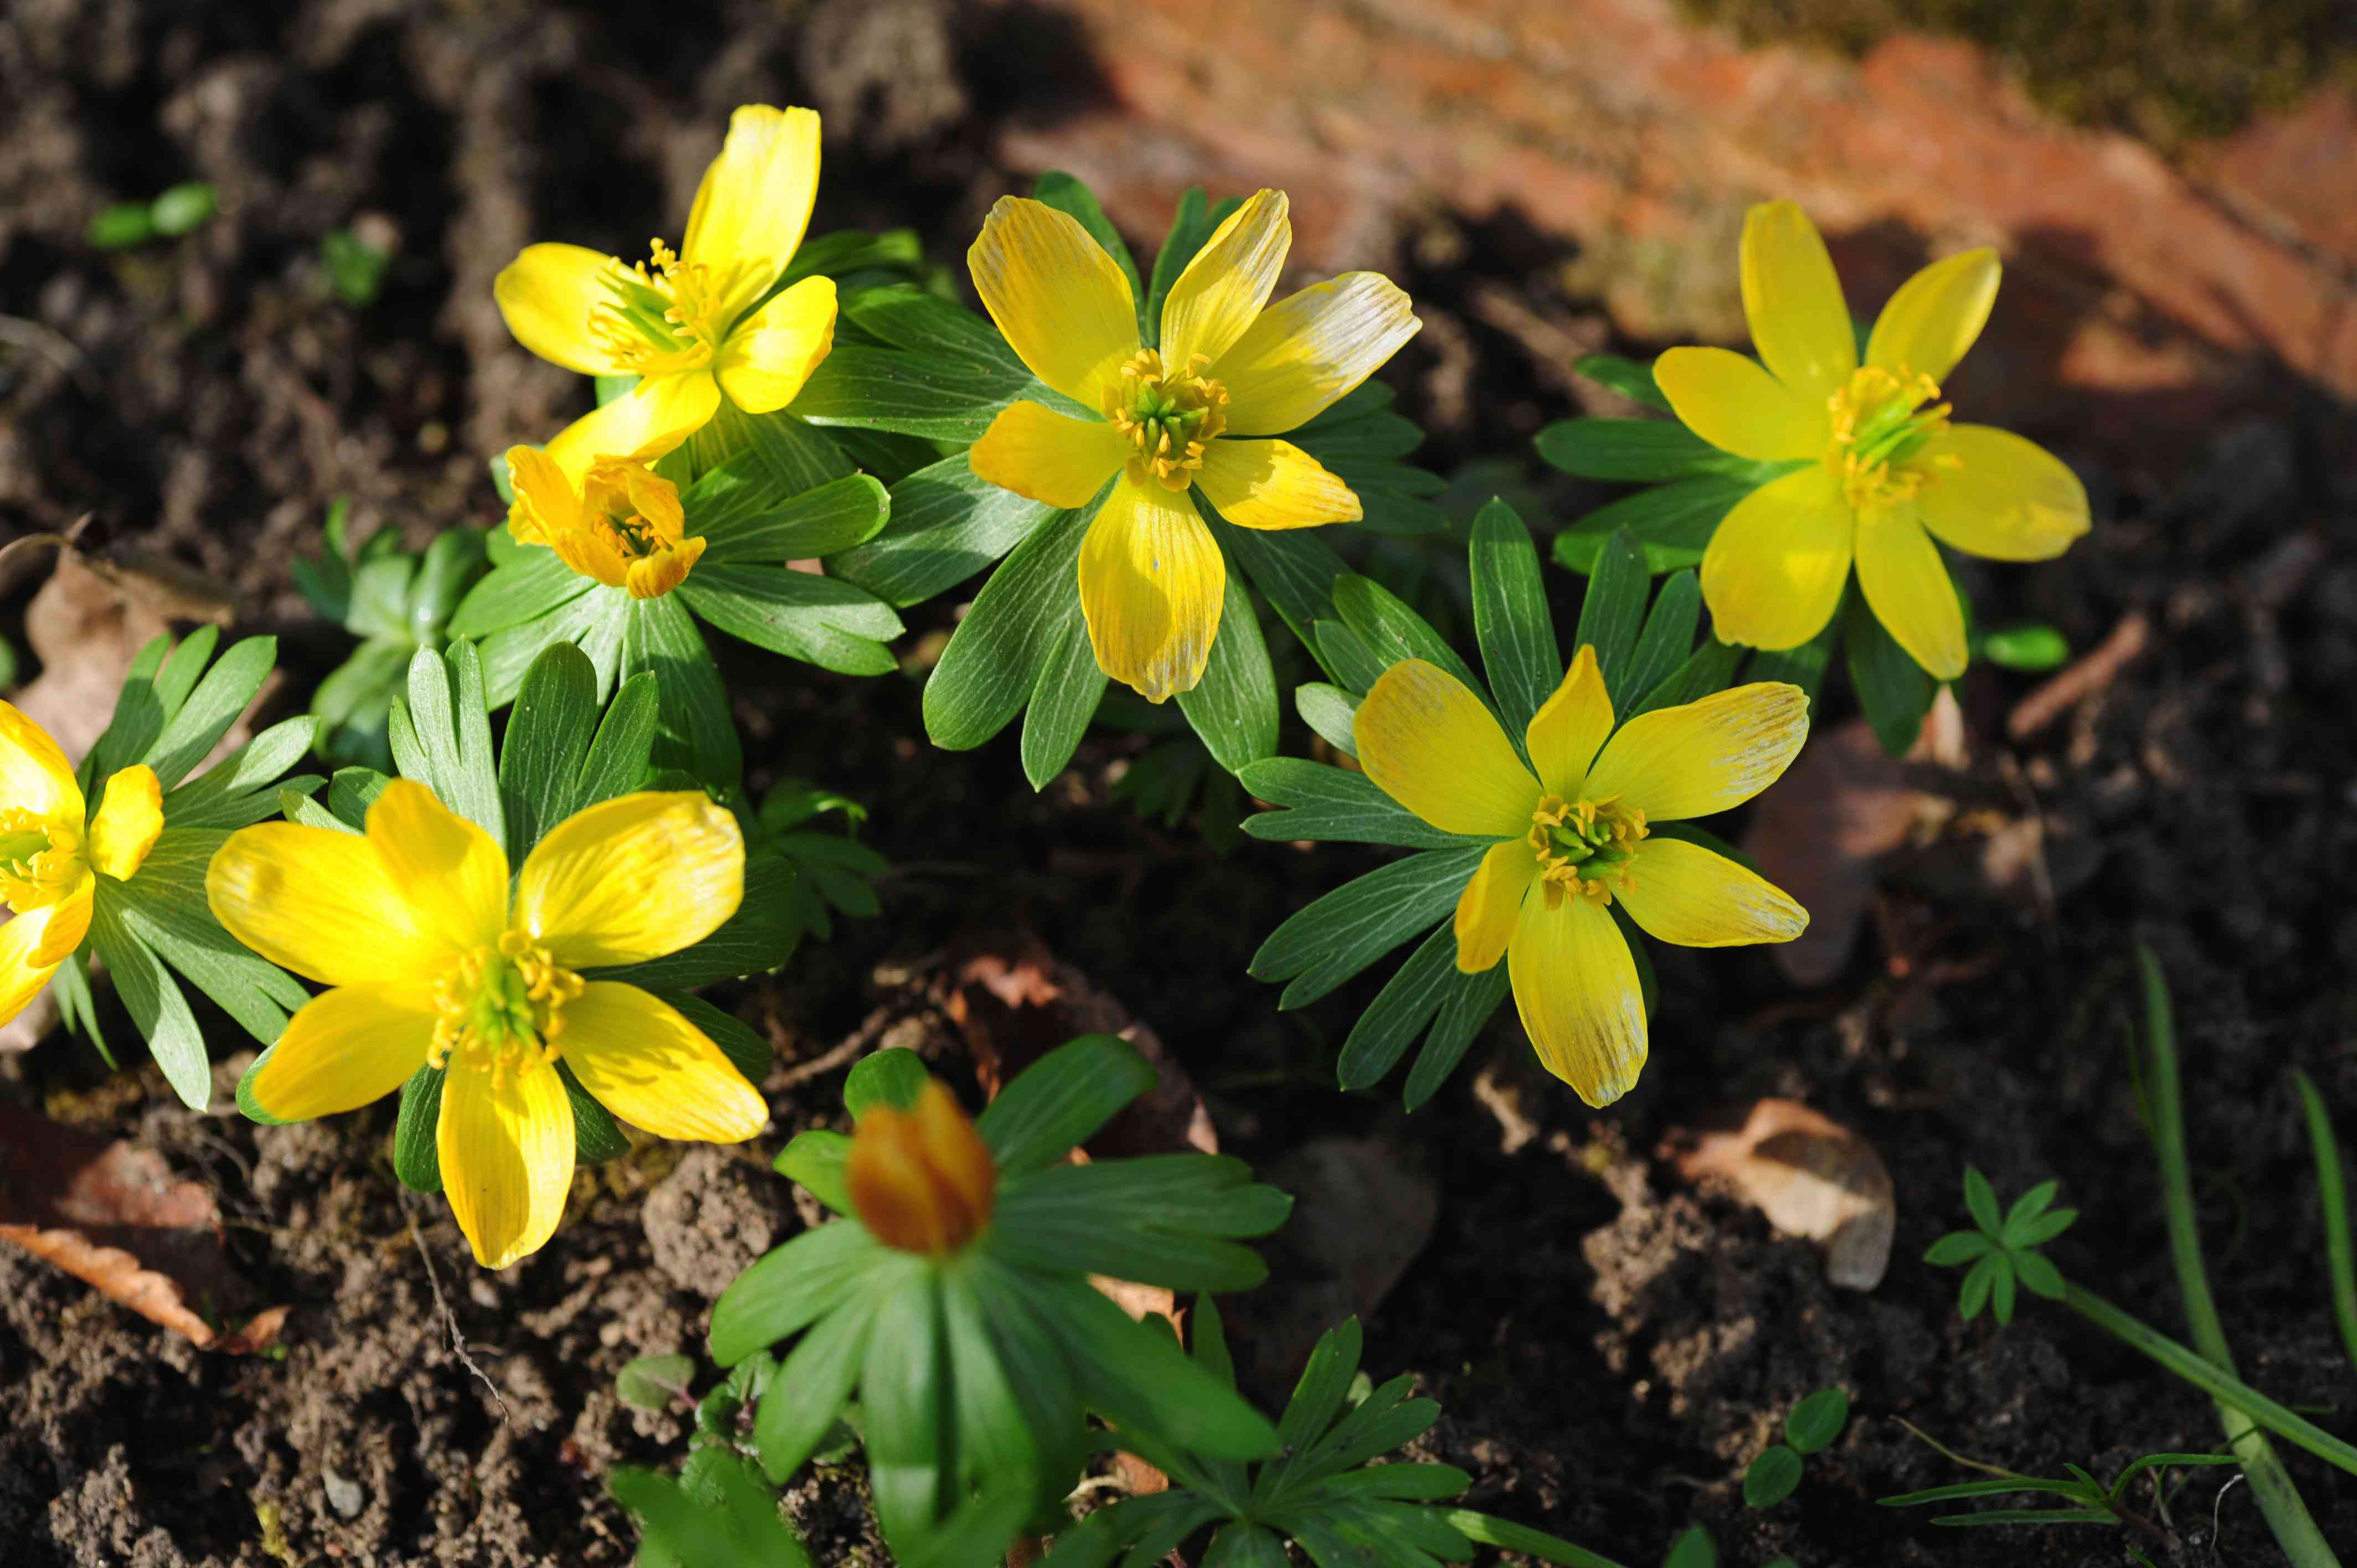 Winter aconite plant with bright yellow flowers and radiating leaves underneath closeup